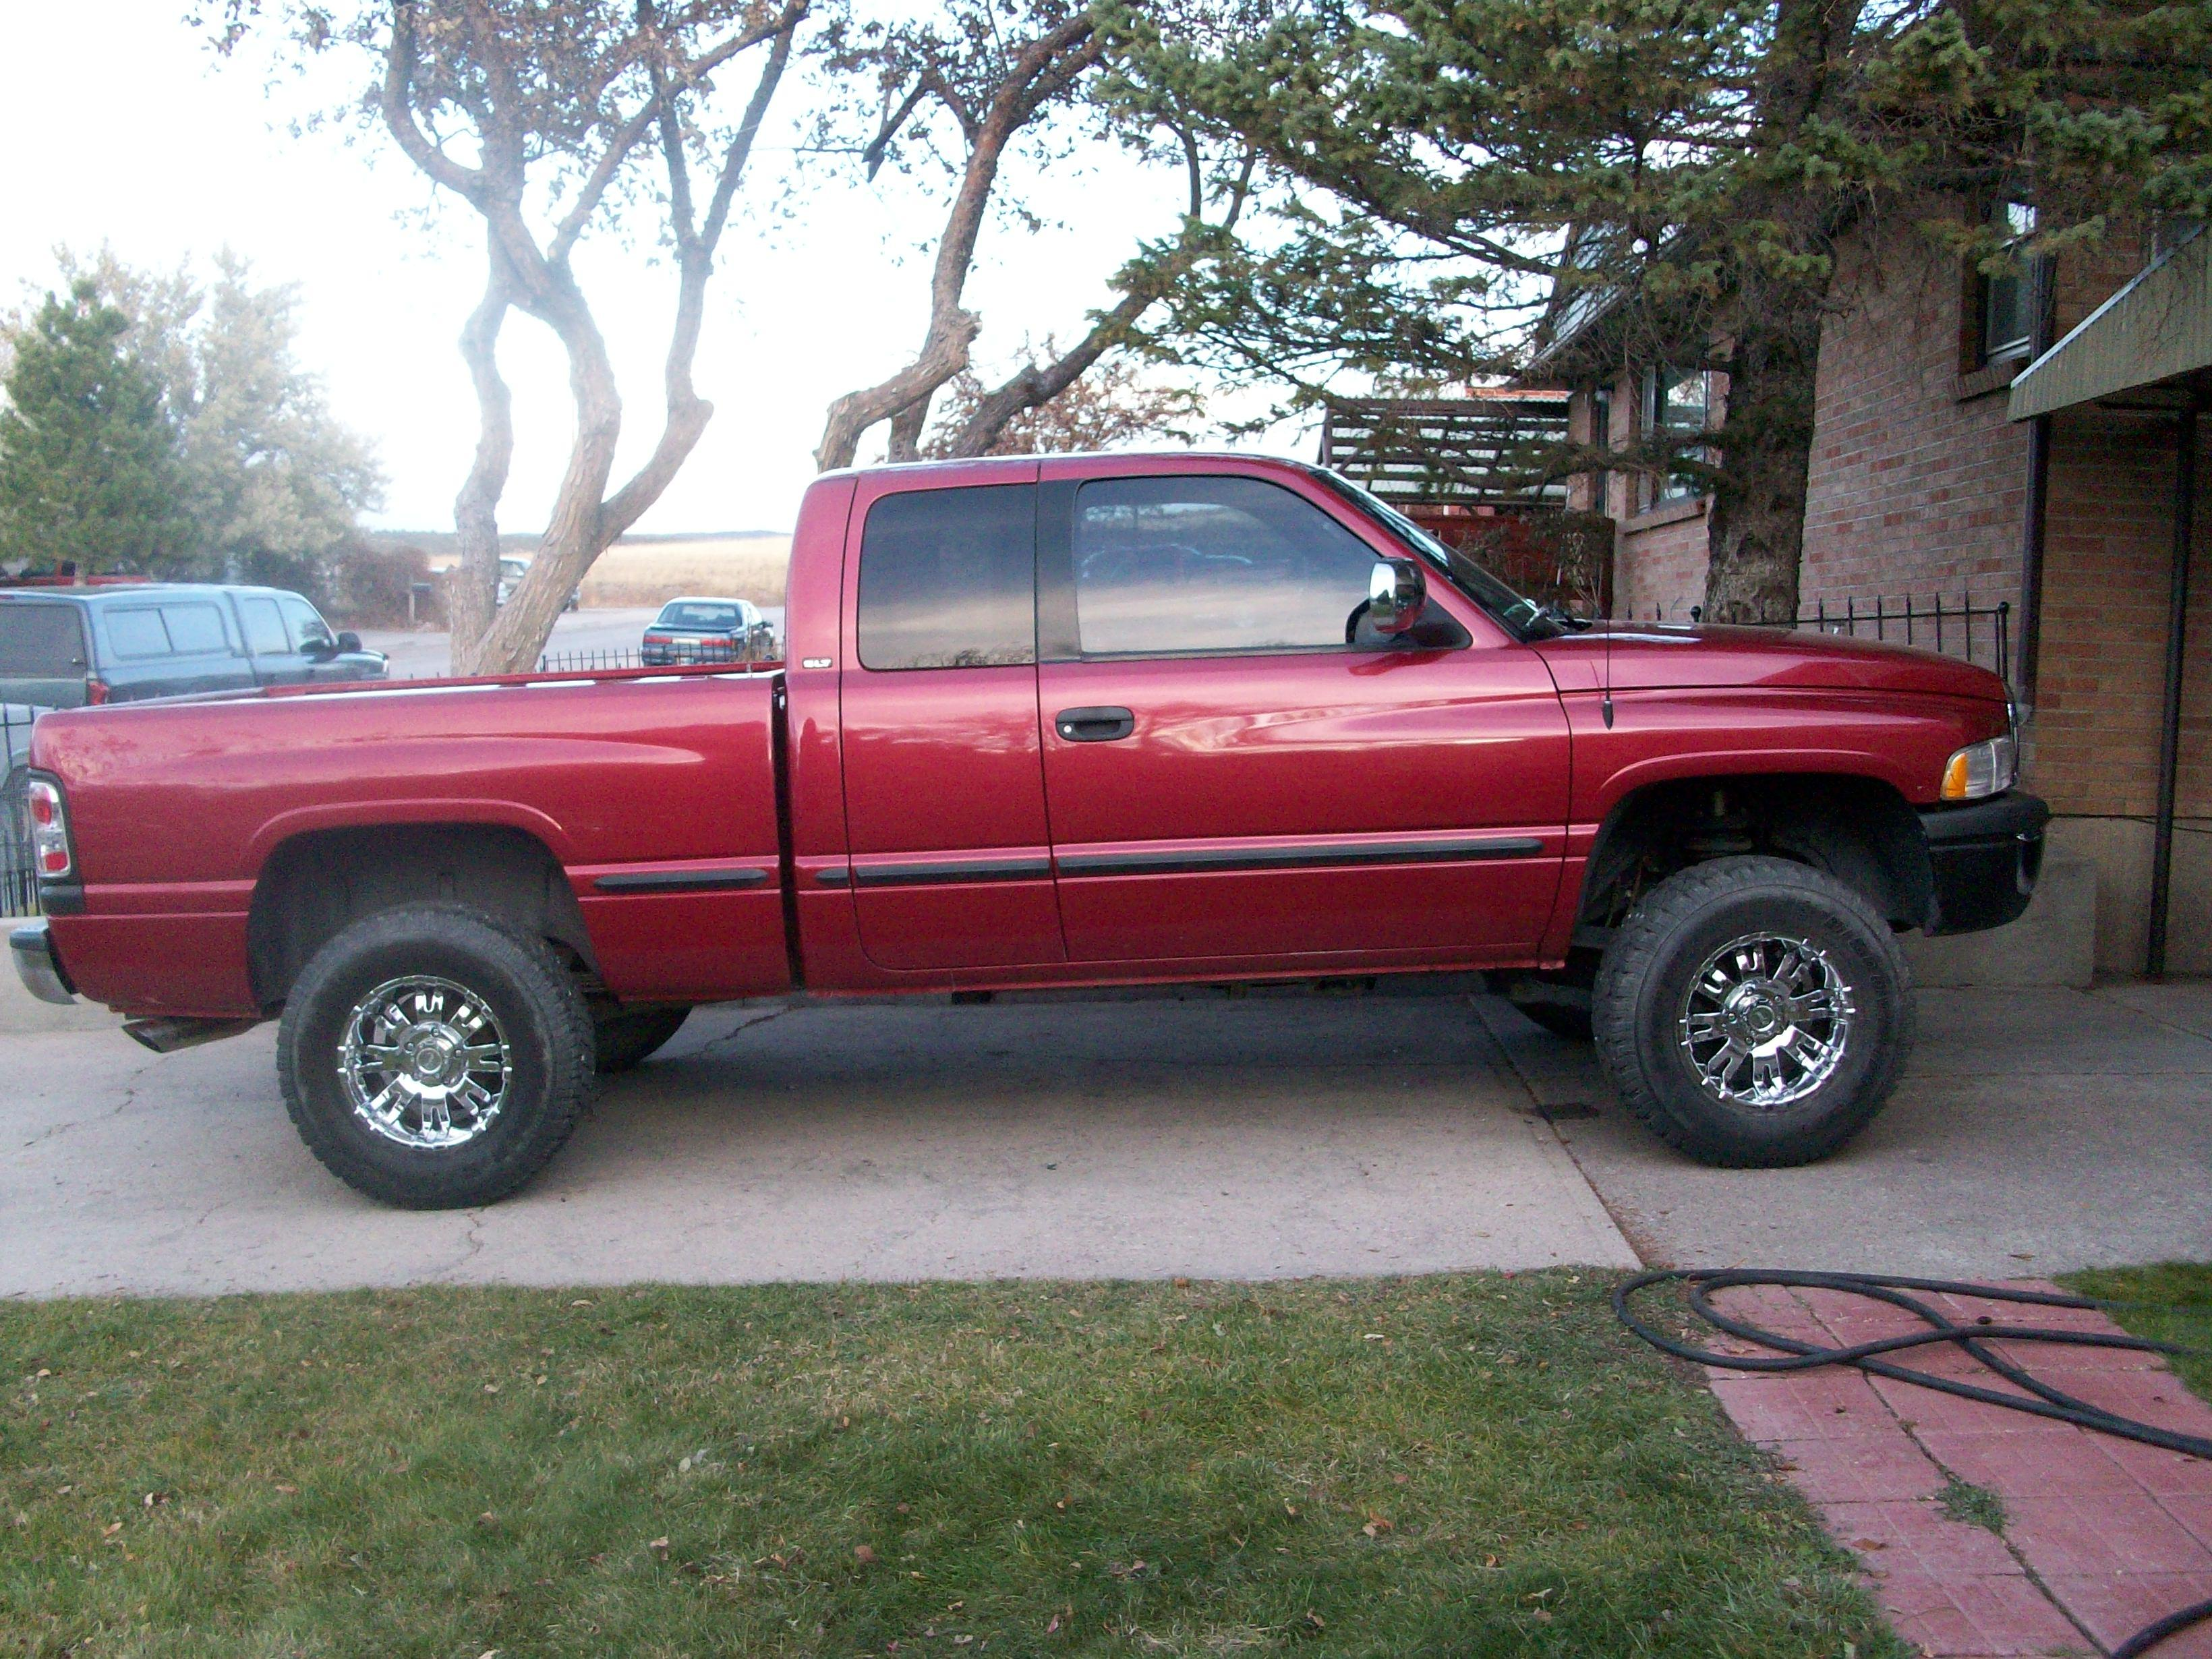 Bigreddodgetruck 1999 Dodge Ram 1500 Quad Cabshort Bed